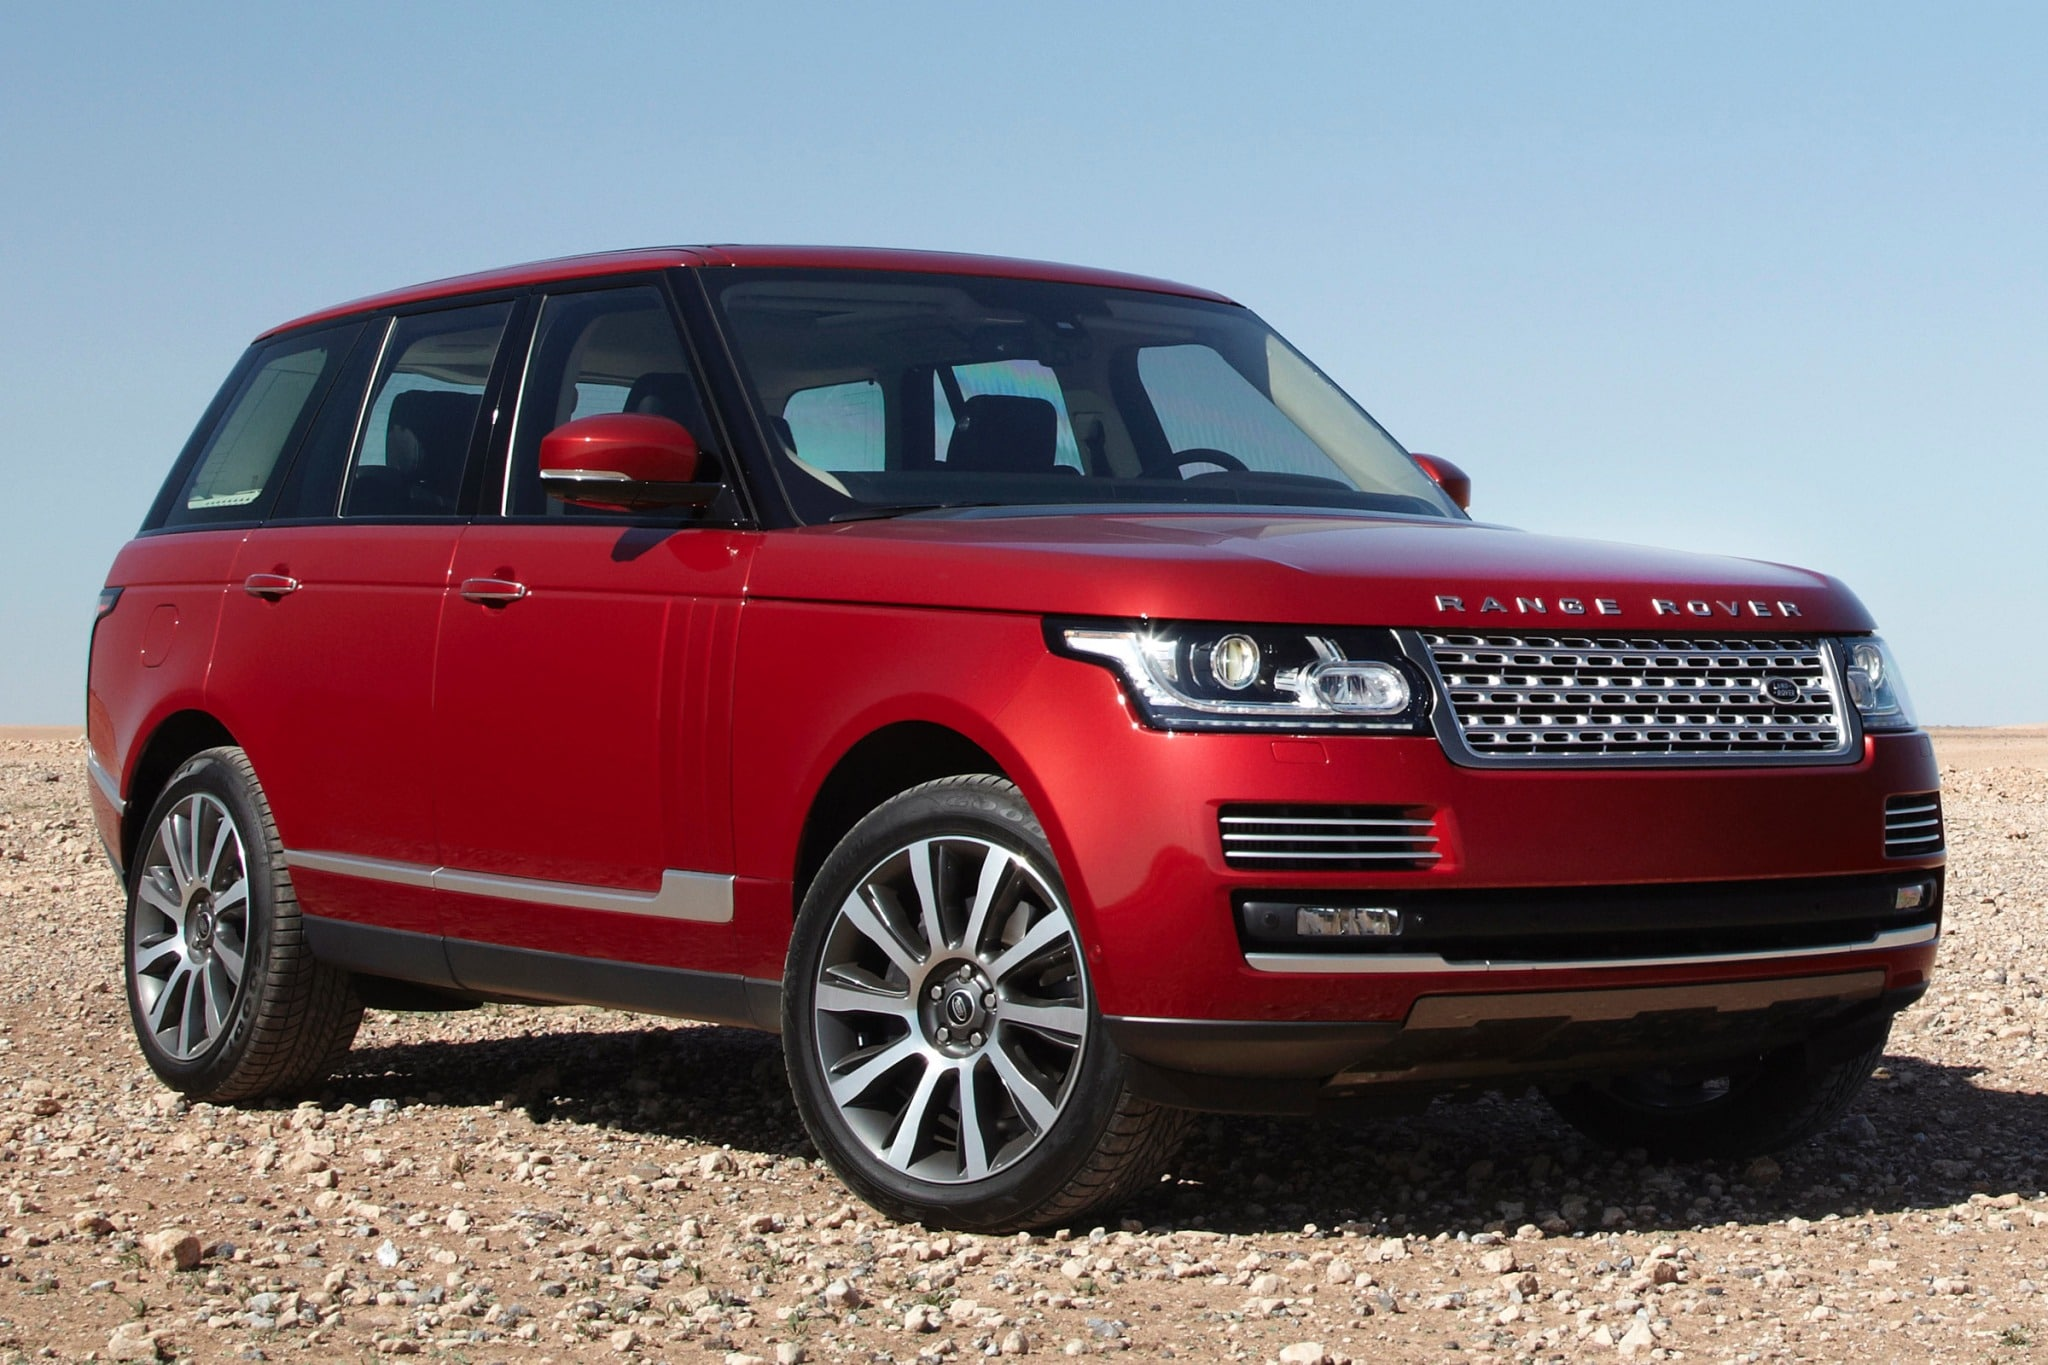 Maintenance Schedule for 2015 Land Rover Range Rover